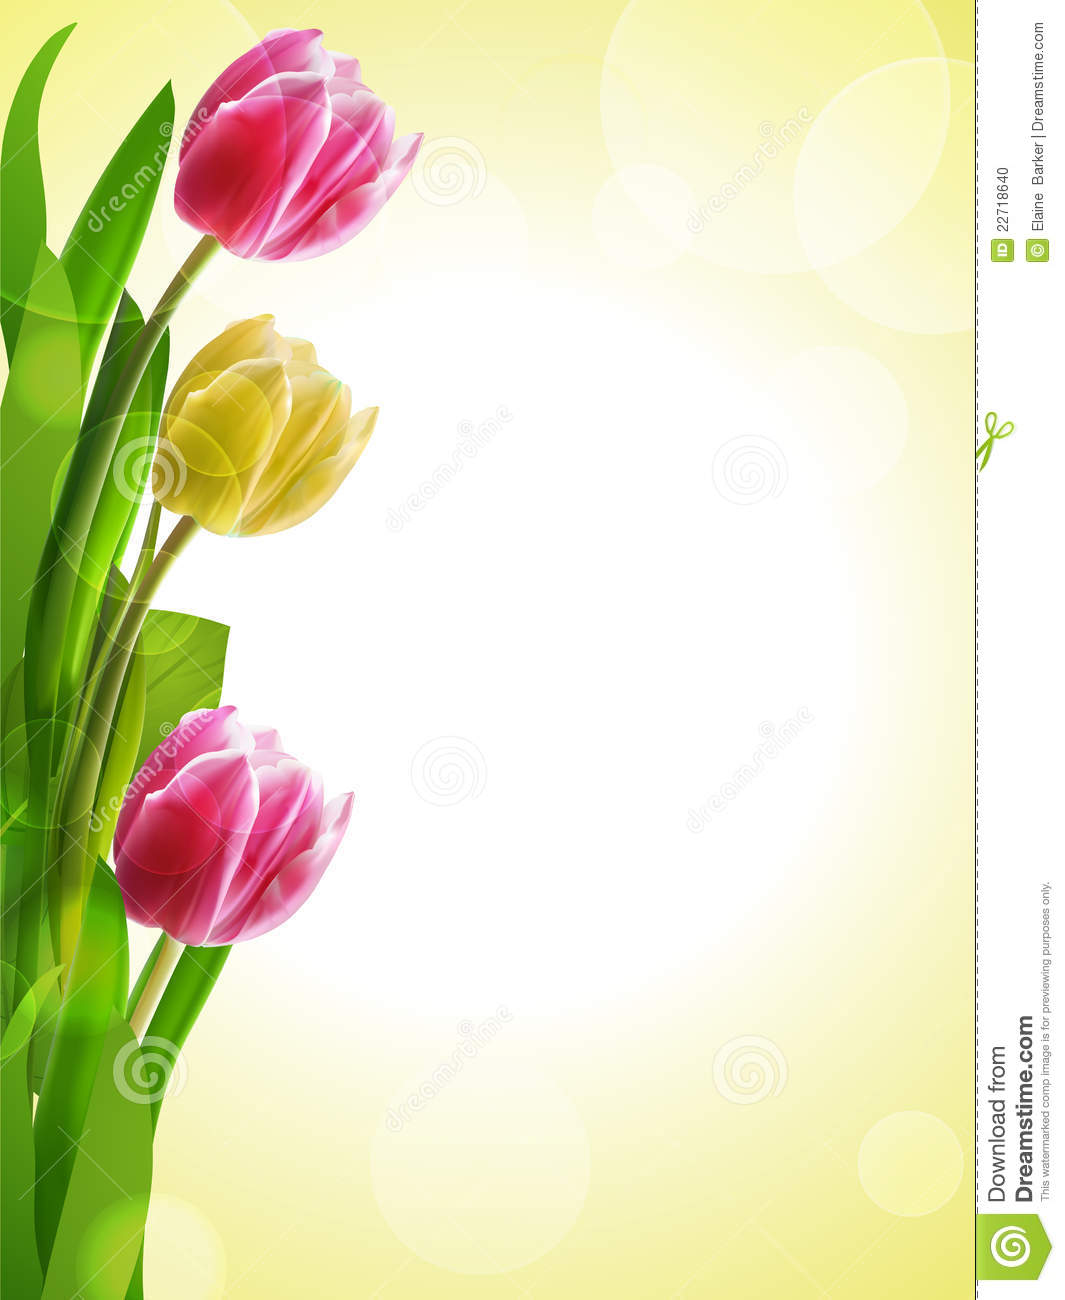 More similar stock images of ` Tulip background yellow and pink `